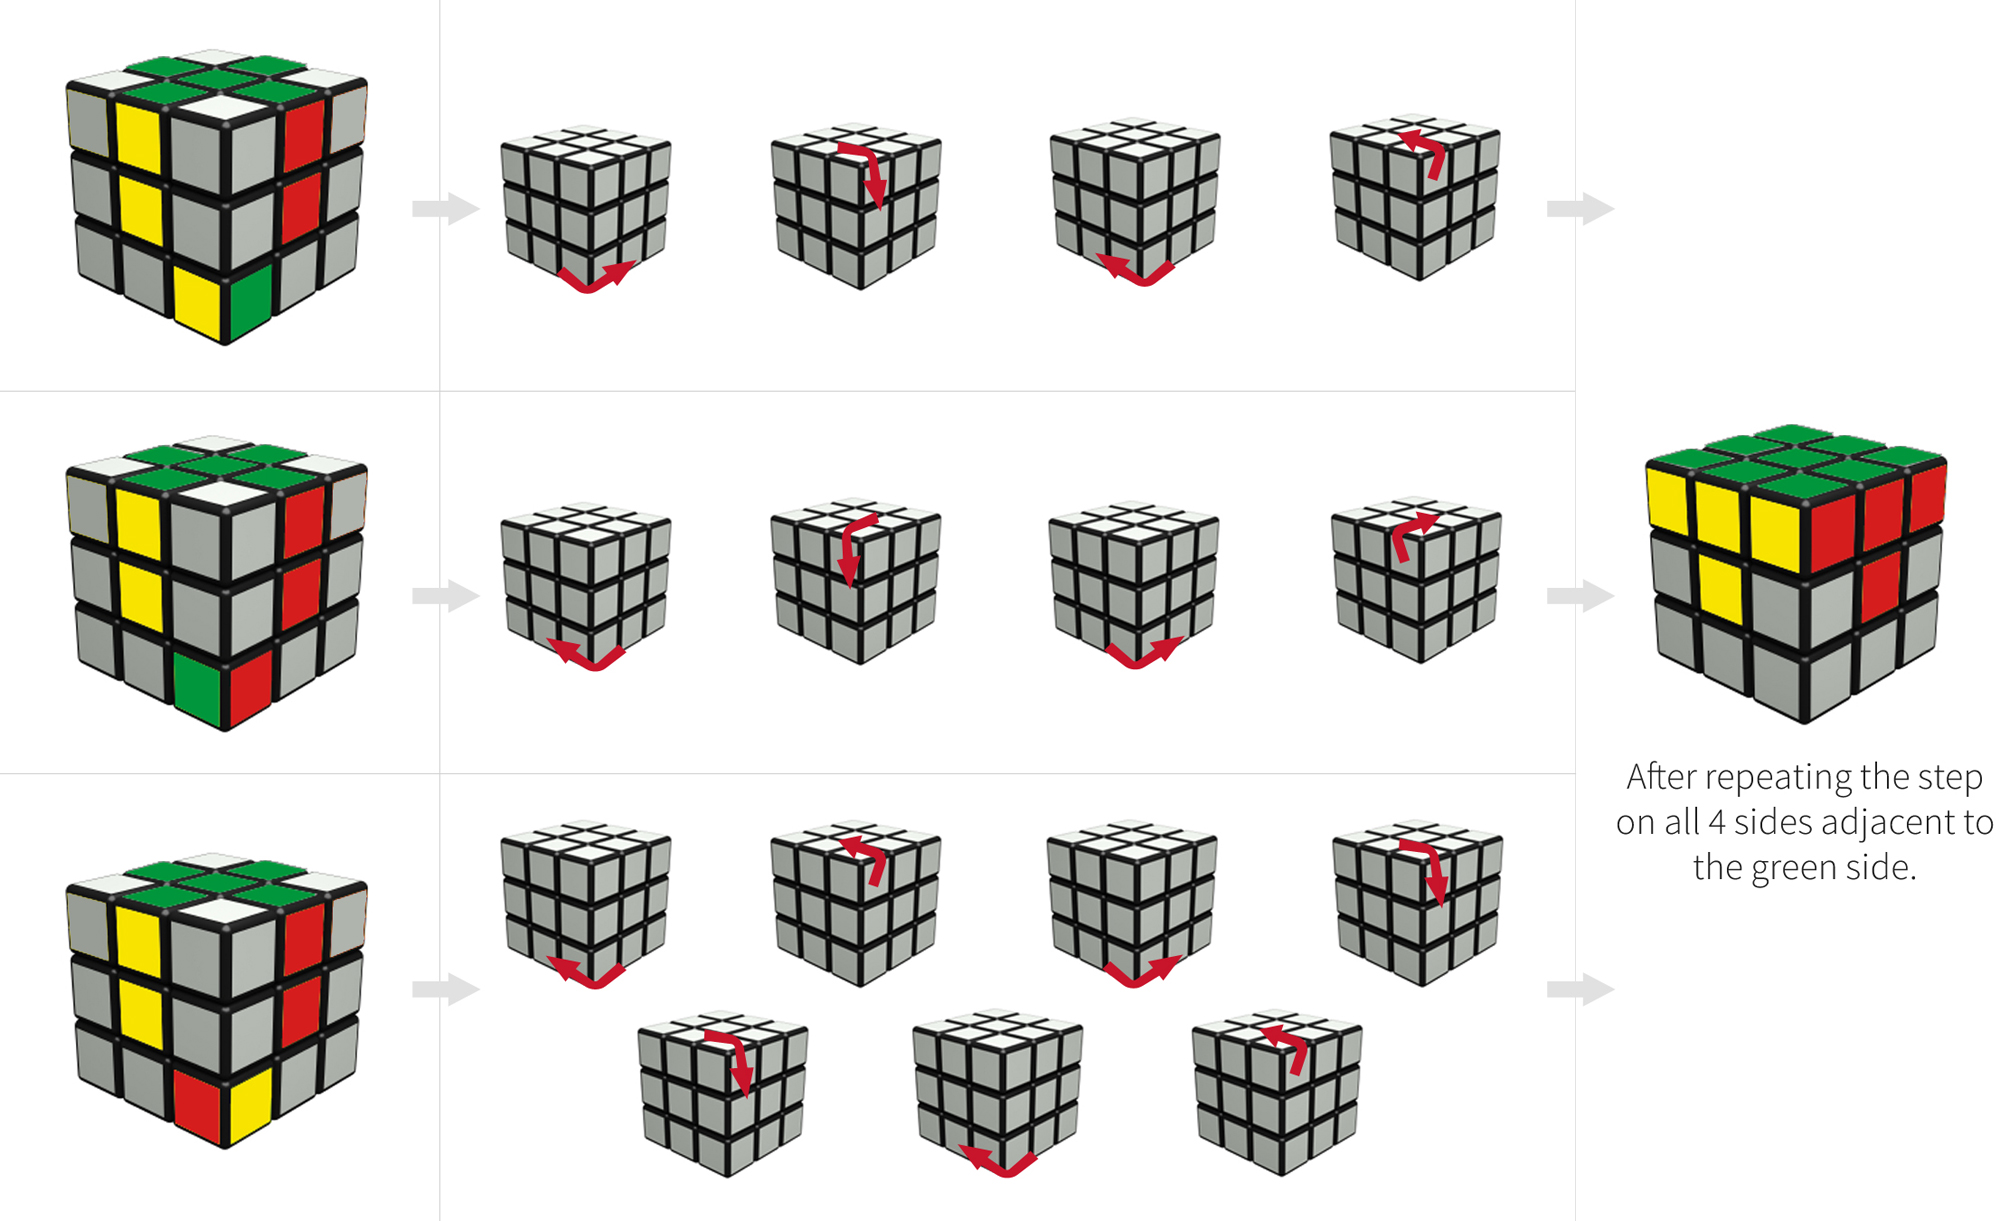 ba2d801f3c0f How to Solve a Rubik s Cube - Pictures for Beginners!